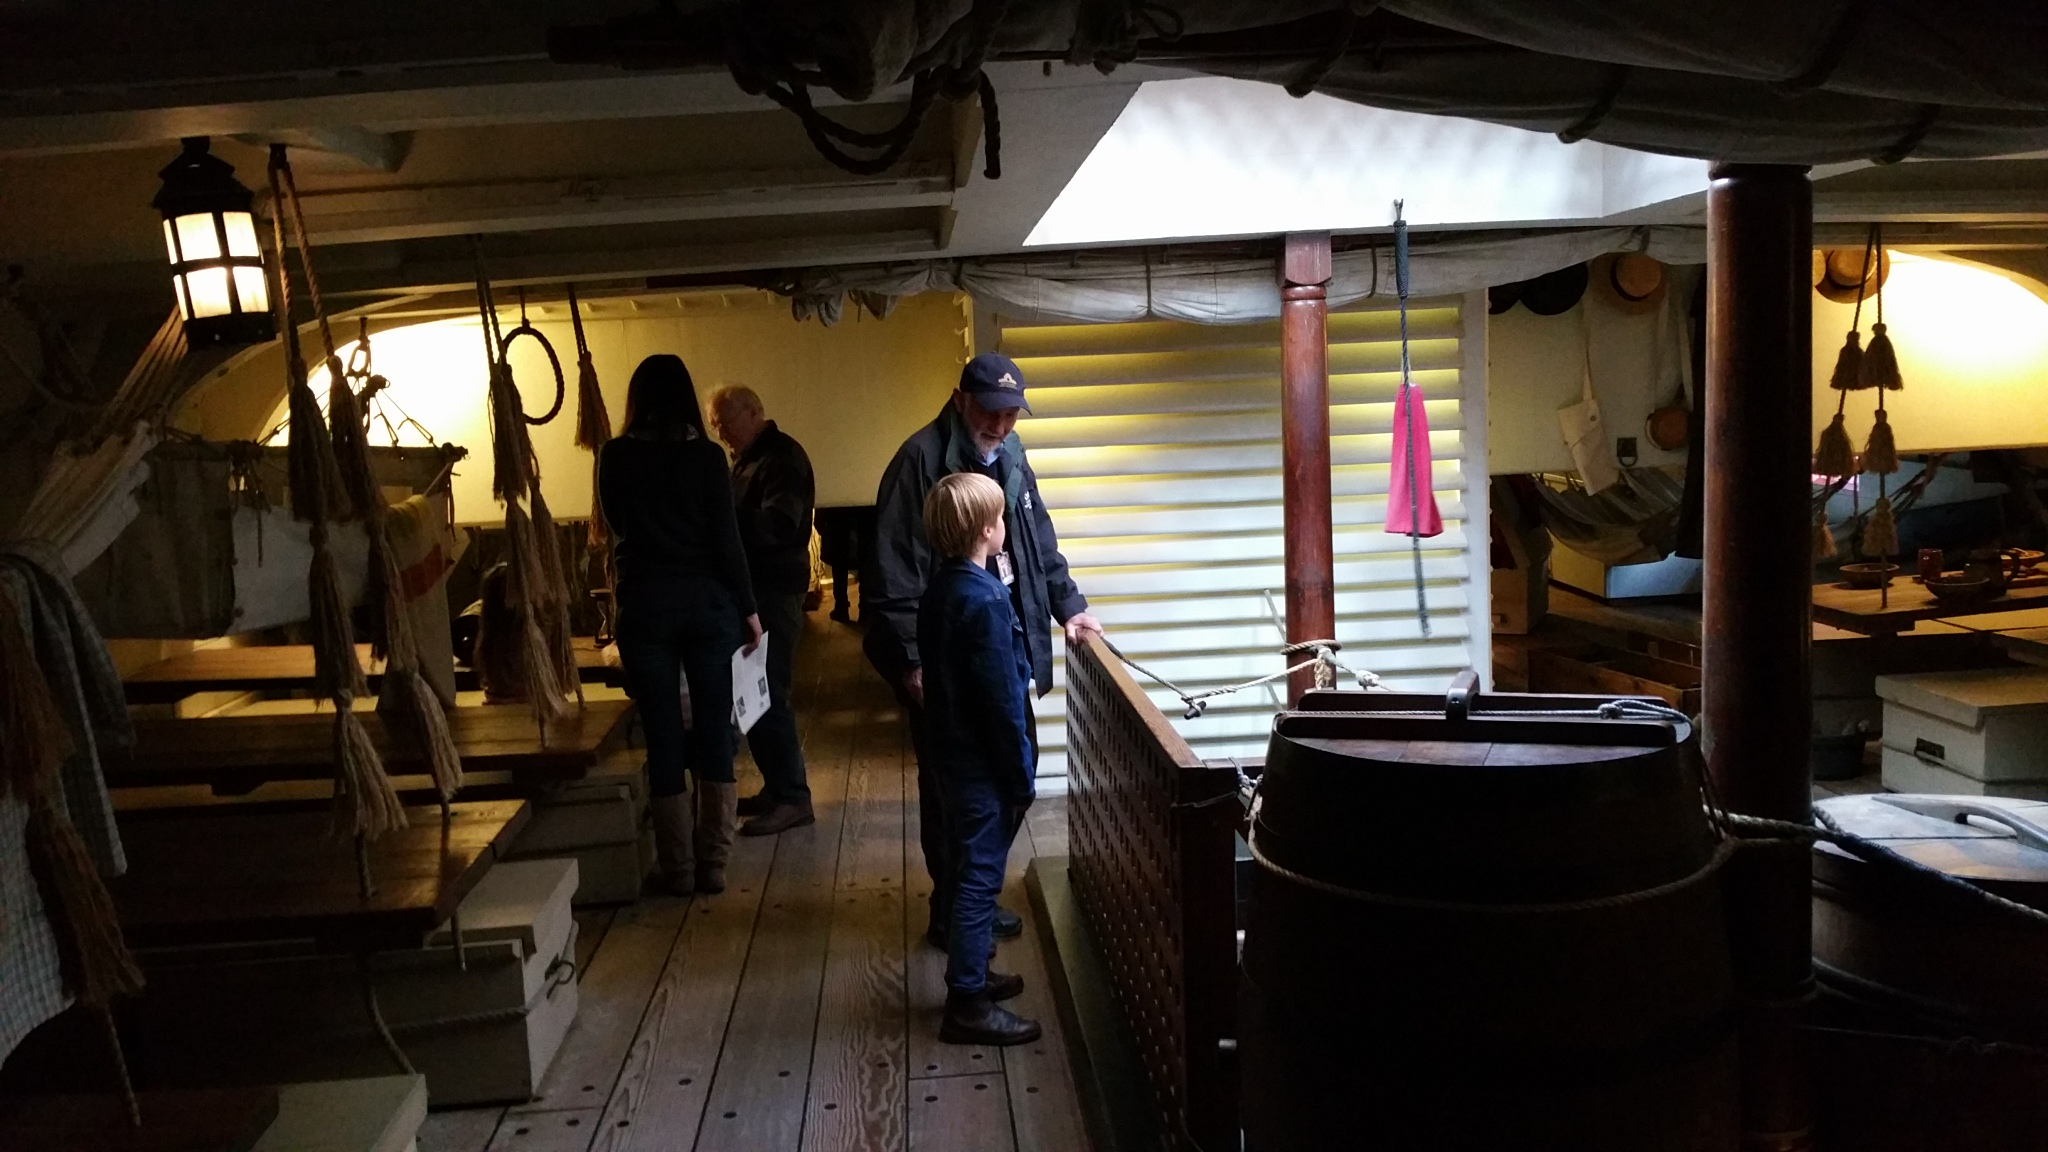 Below decks HMB Endeavour